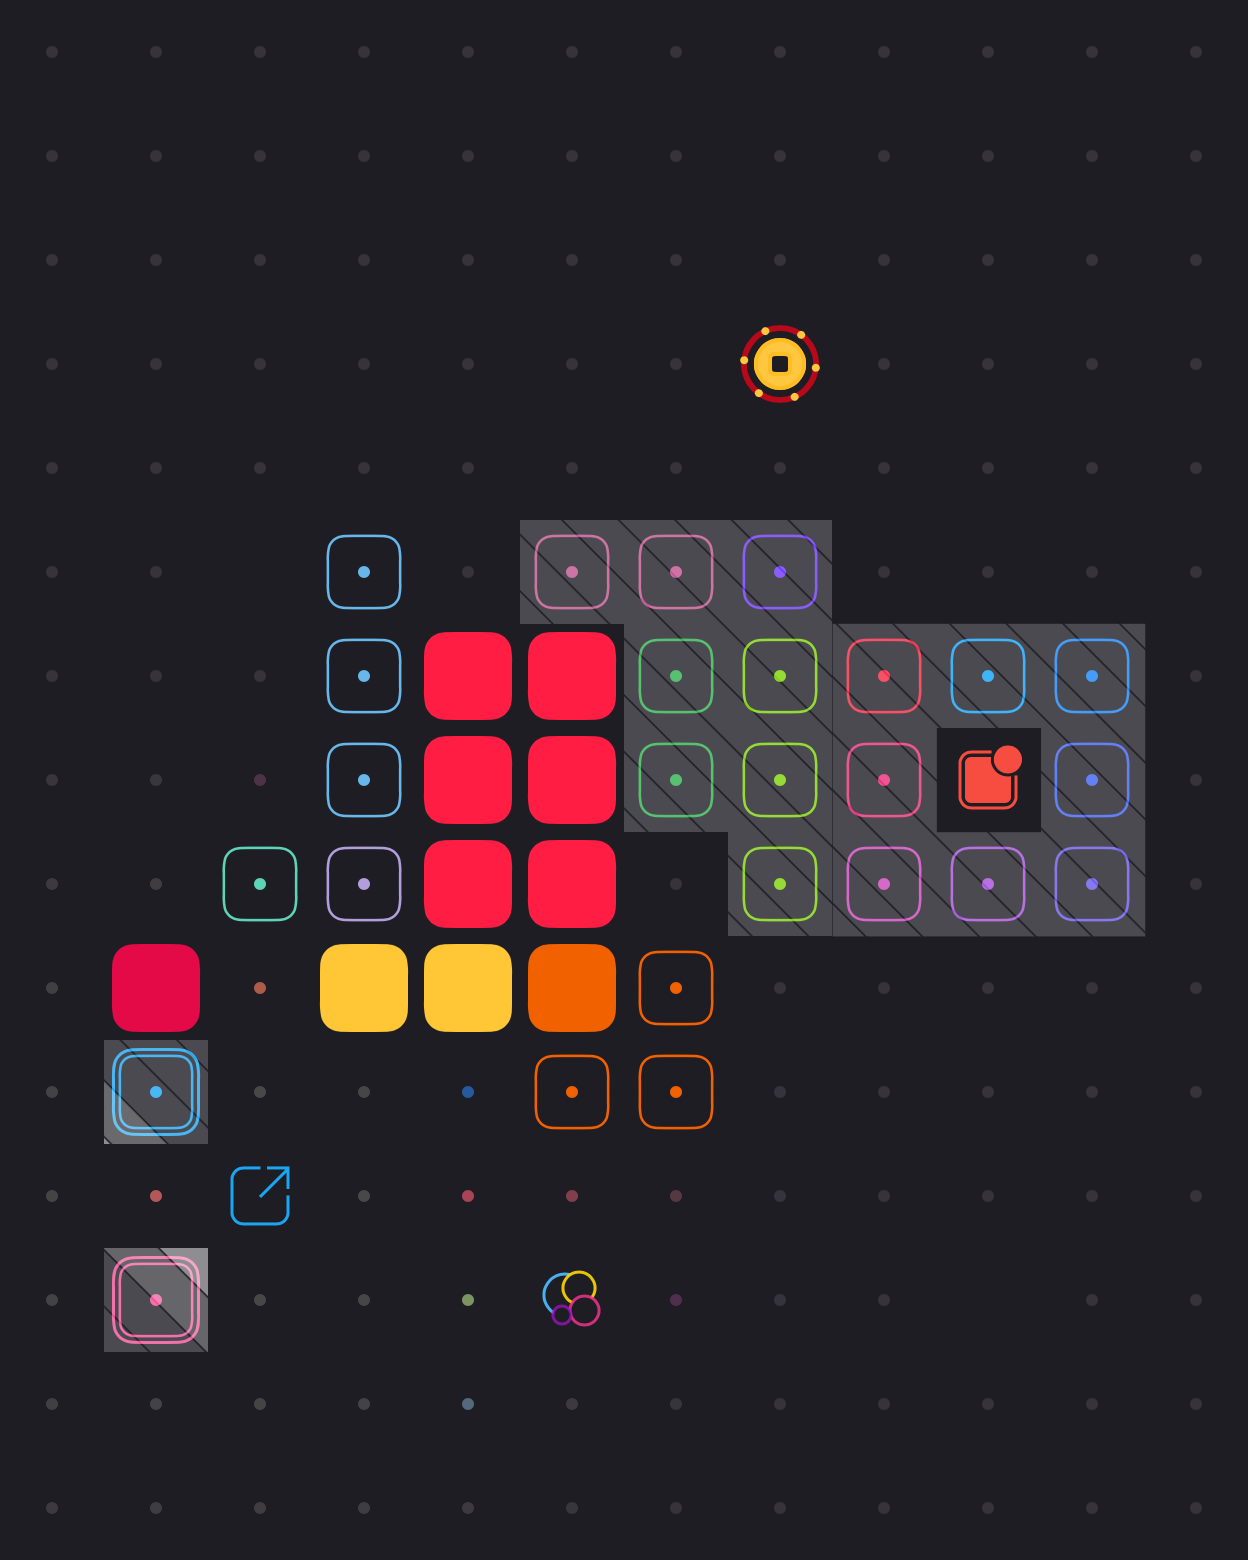 Play Blackbox for free at the App Store. It's a fun think